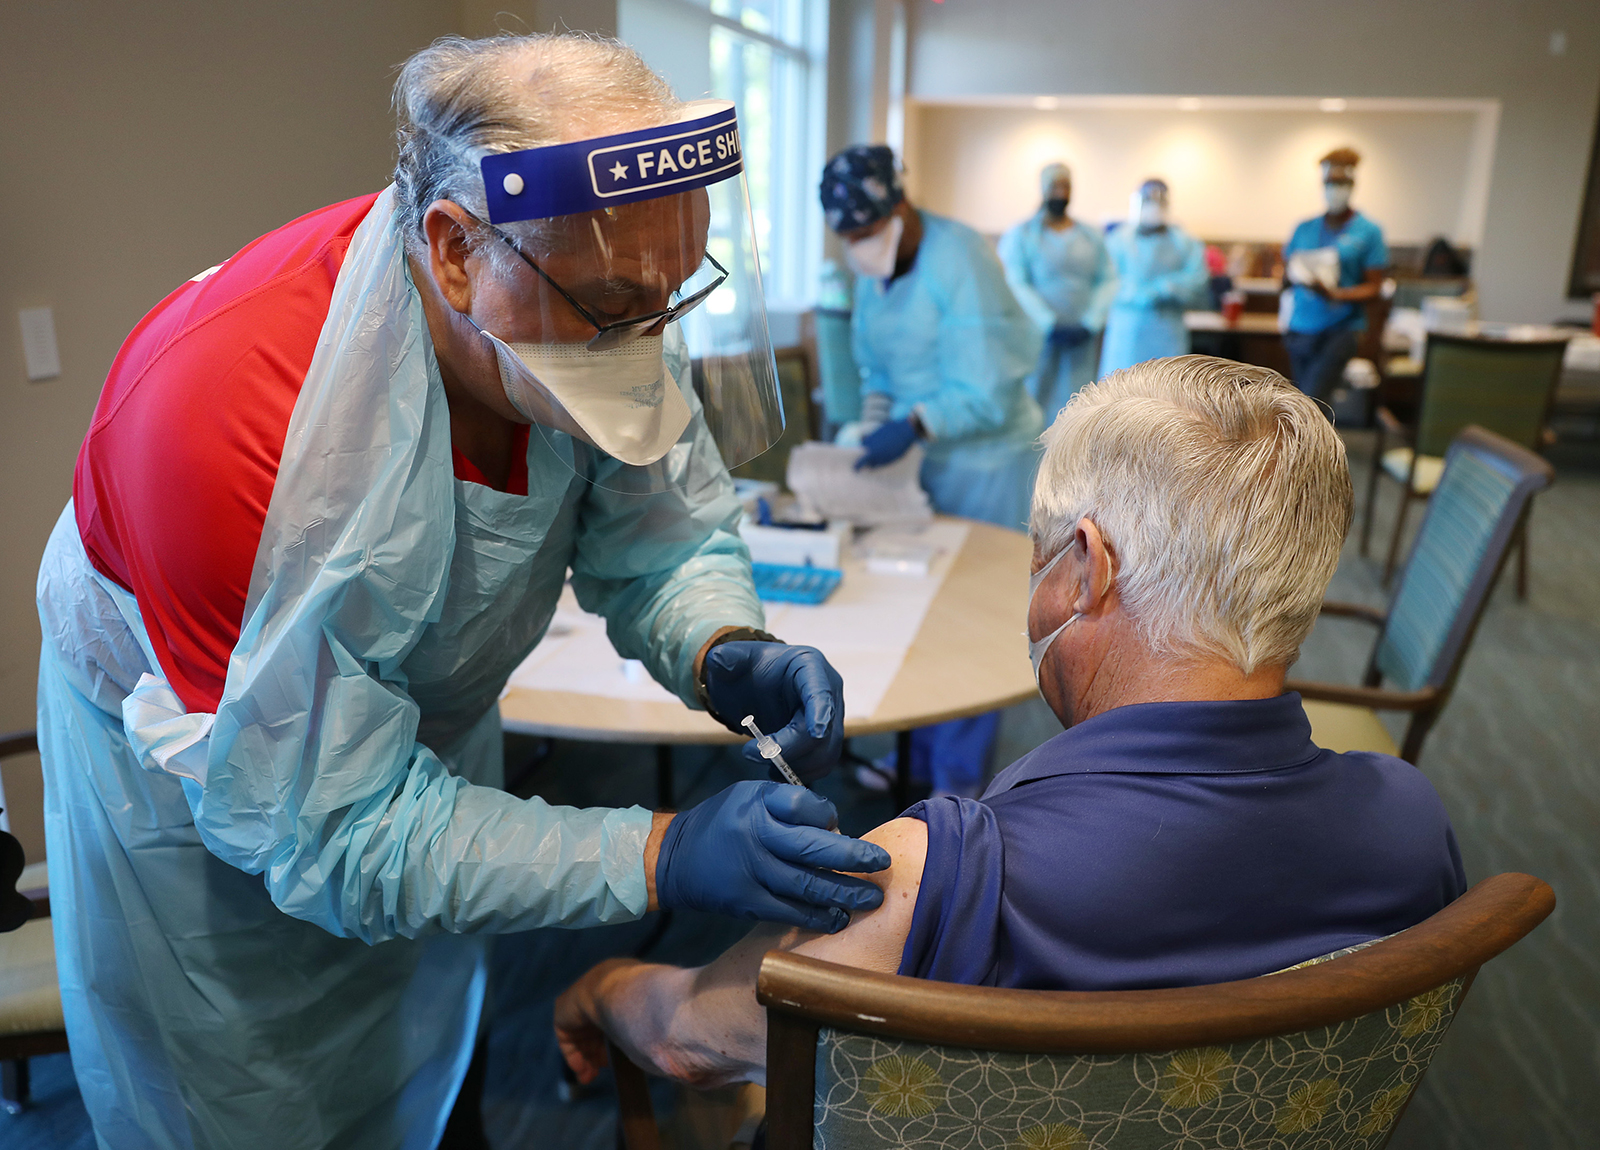 A healthcare worker administers a Pfizer-BioNtech Covid-19 vaccine at the John Knox Village Continuing Care Retirement Community on January 6, in Pompano Beach, Florida.